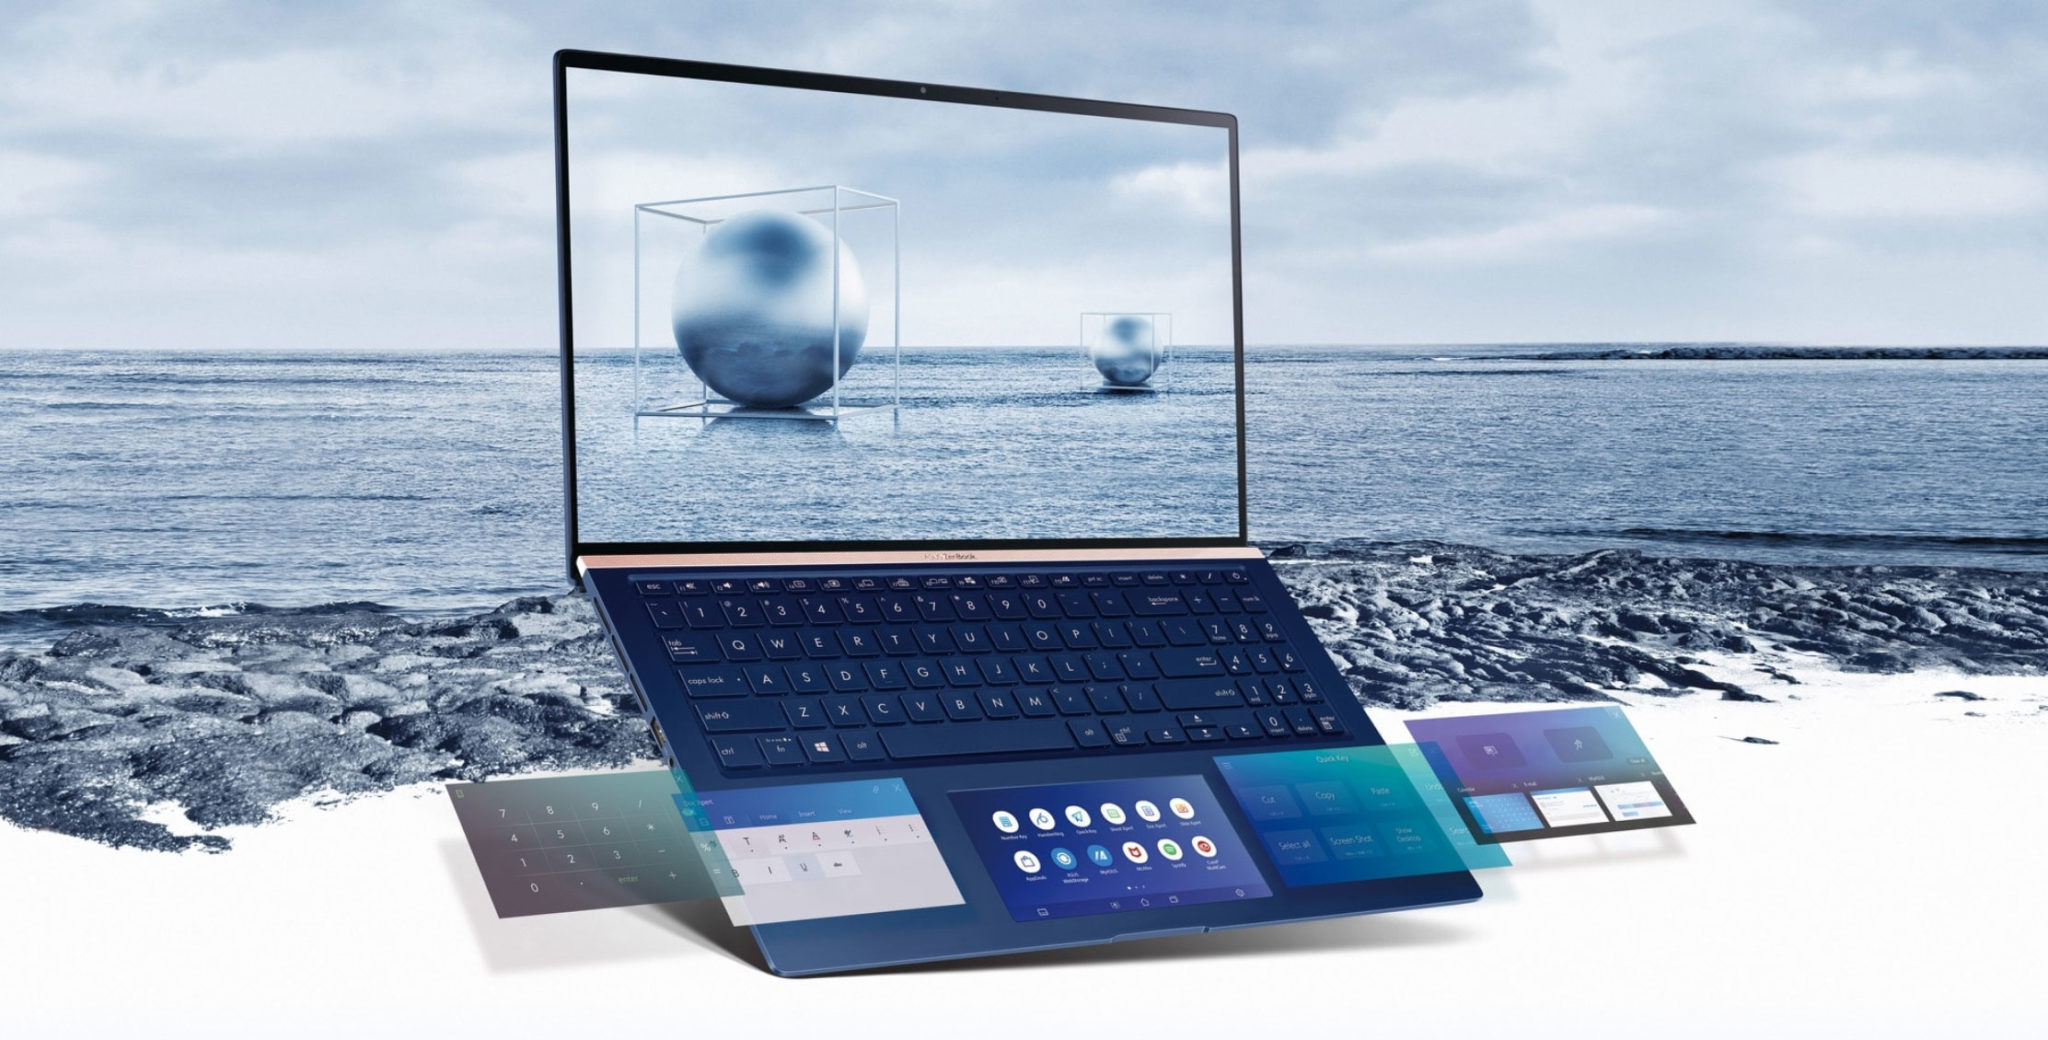 These Are 5 Reasons To Buy The ASUS ZenBook 14 UX434